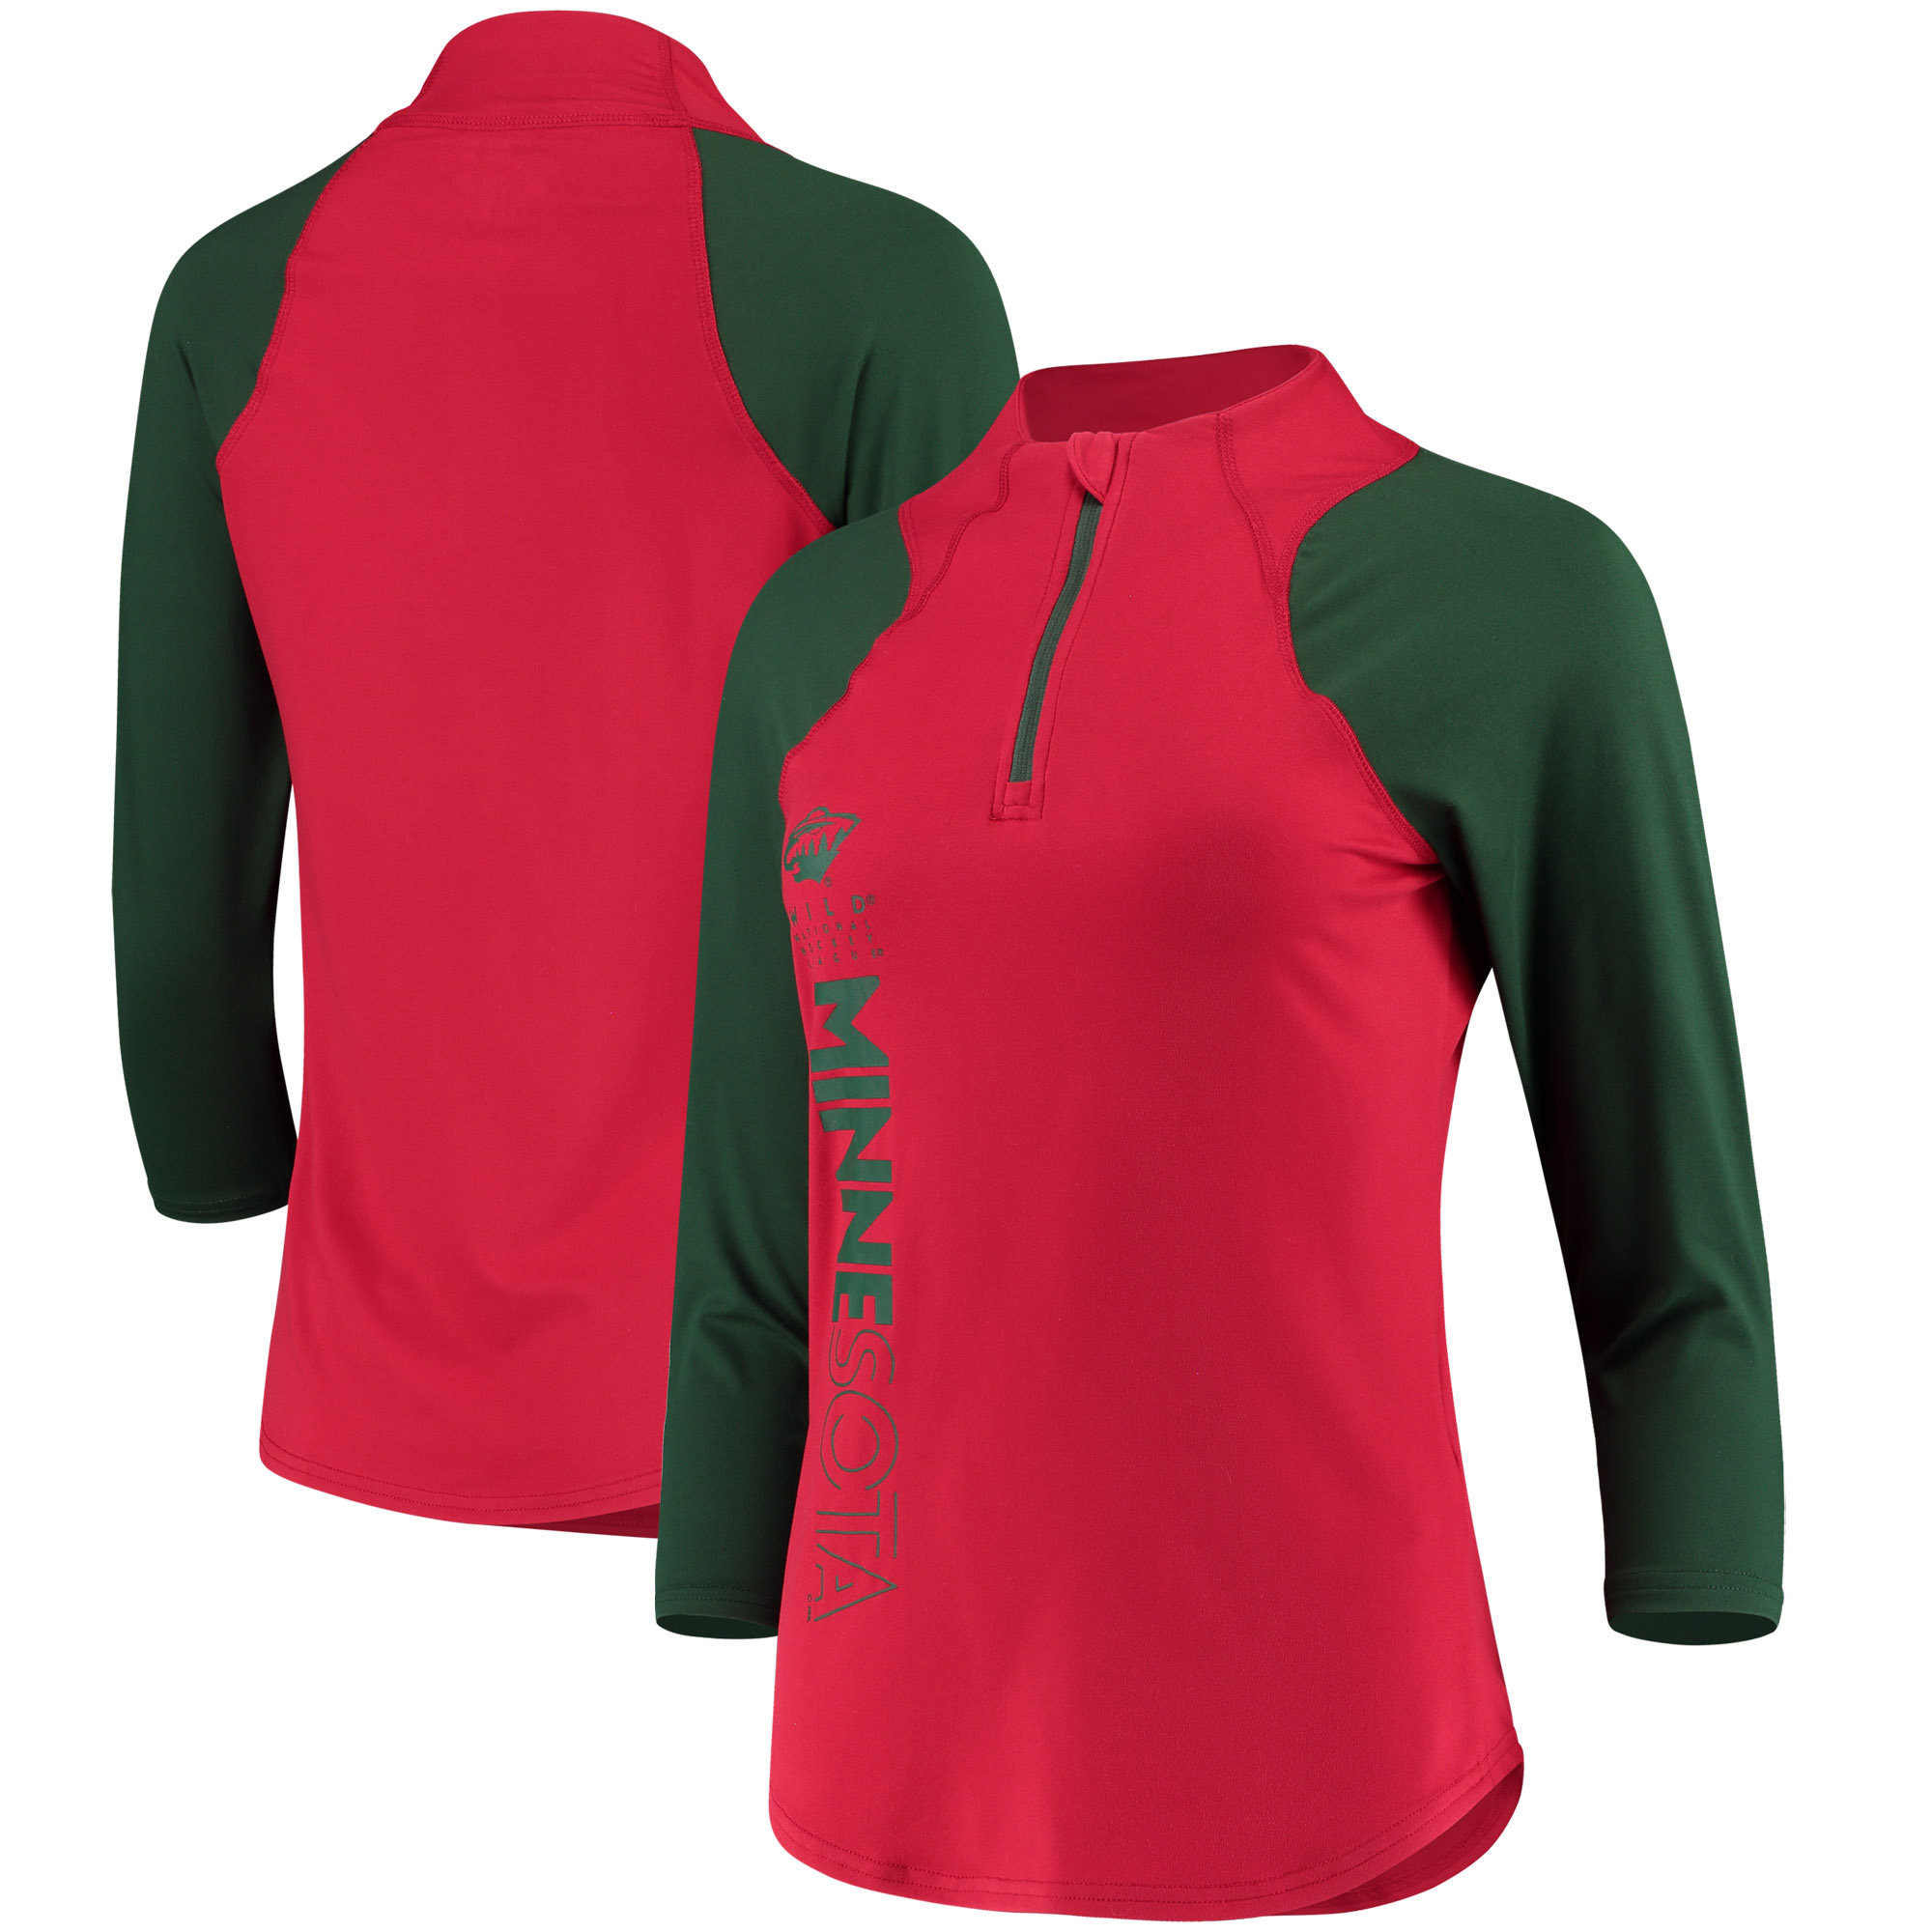 Minnesota Wild G-III 4Her by Carl Banks Women's Zip It Up Quarter-Zip Long Sleeve T-Shirt Red Green by G-III LEATHER FASHIONS INC